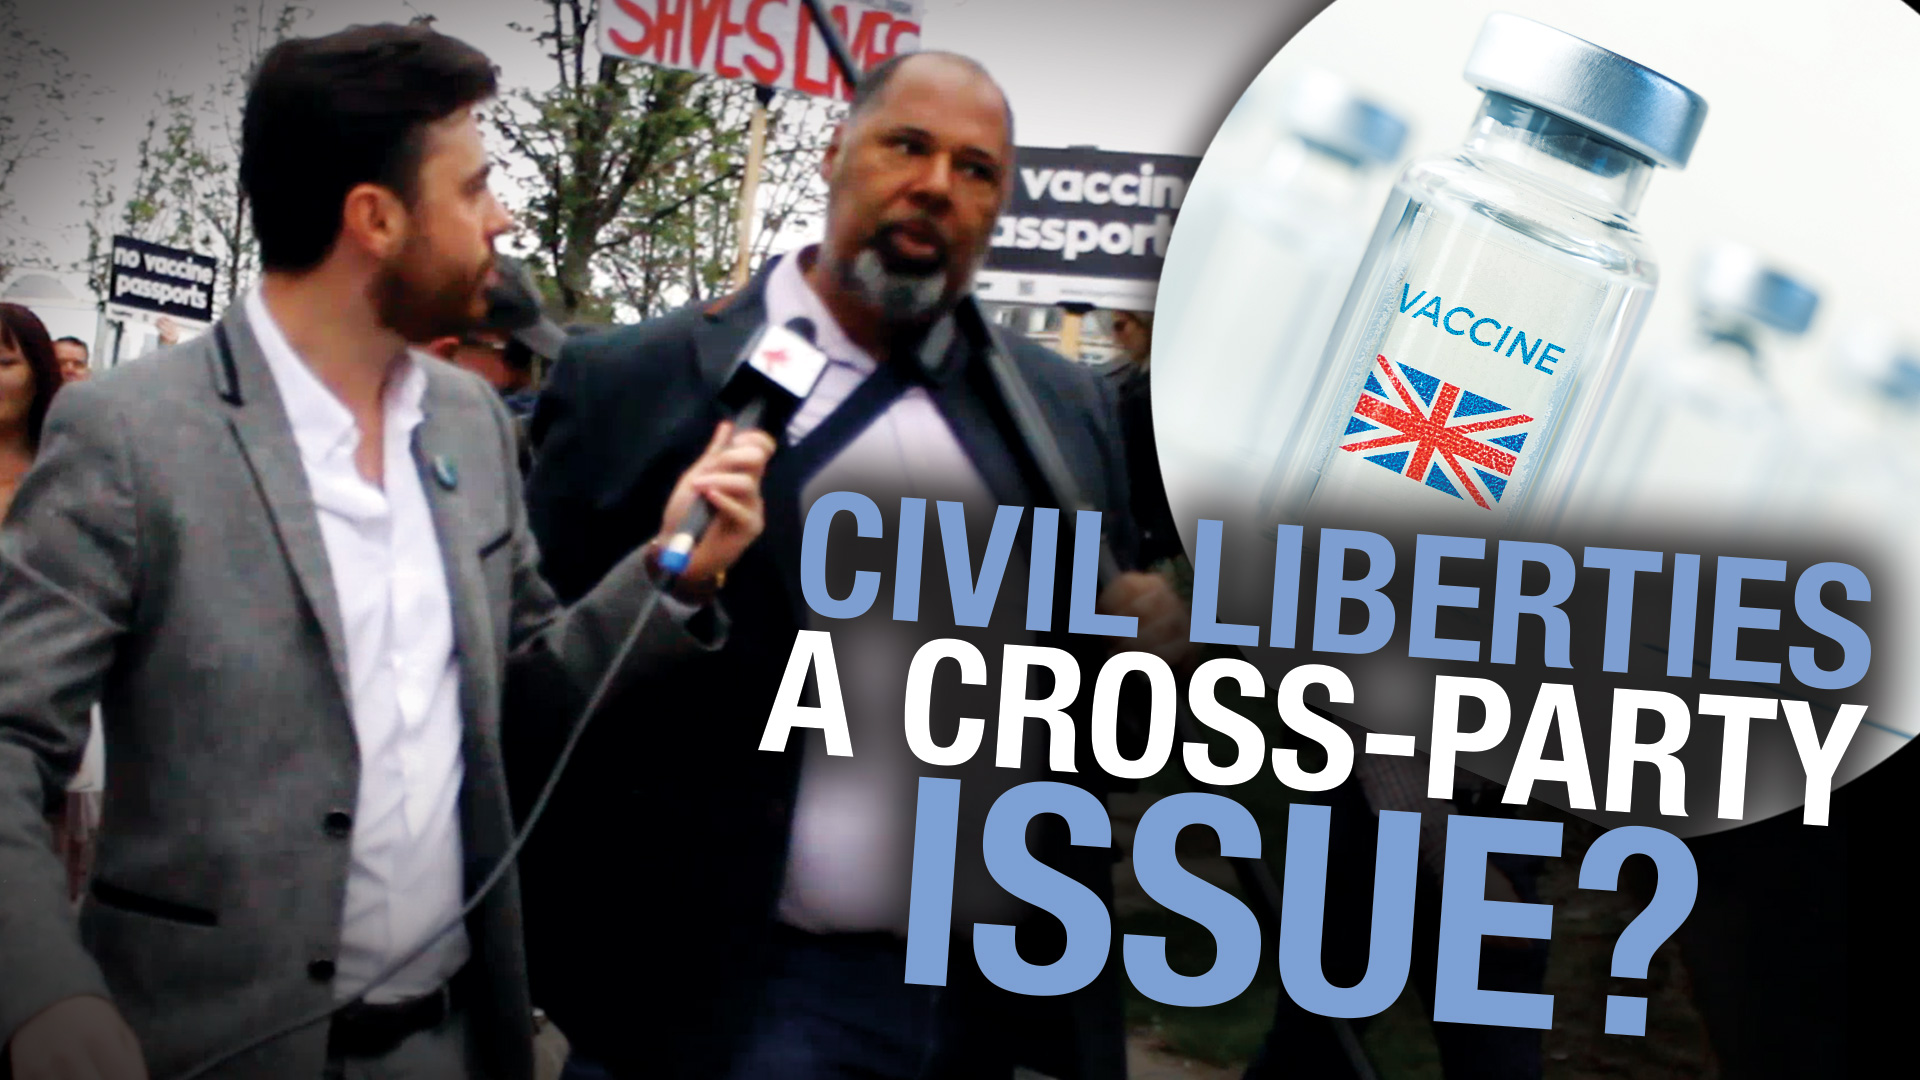 Left or Right: Are civil liberties a cross-party issue?